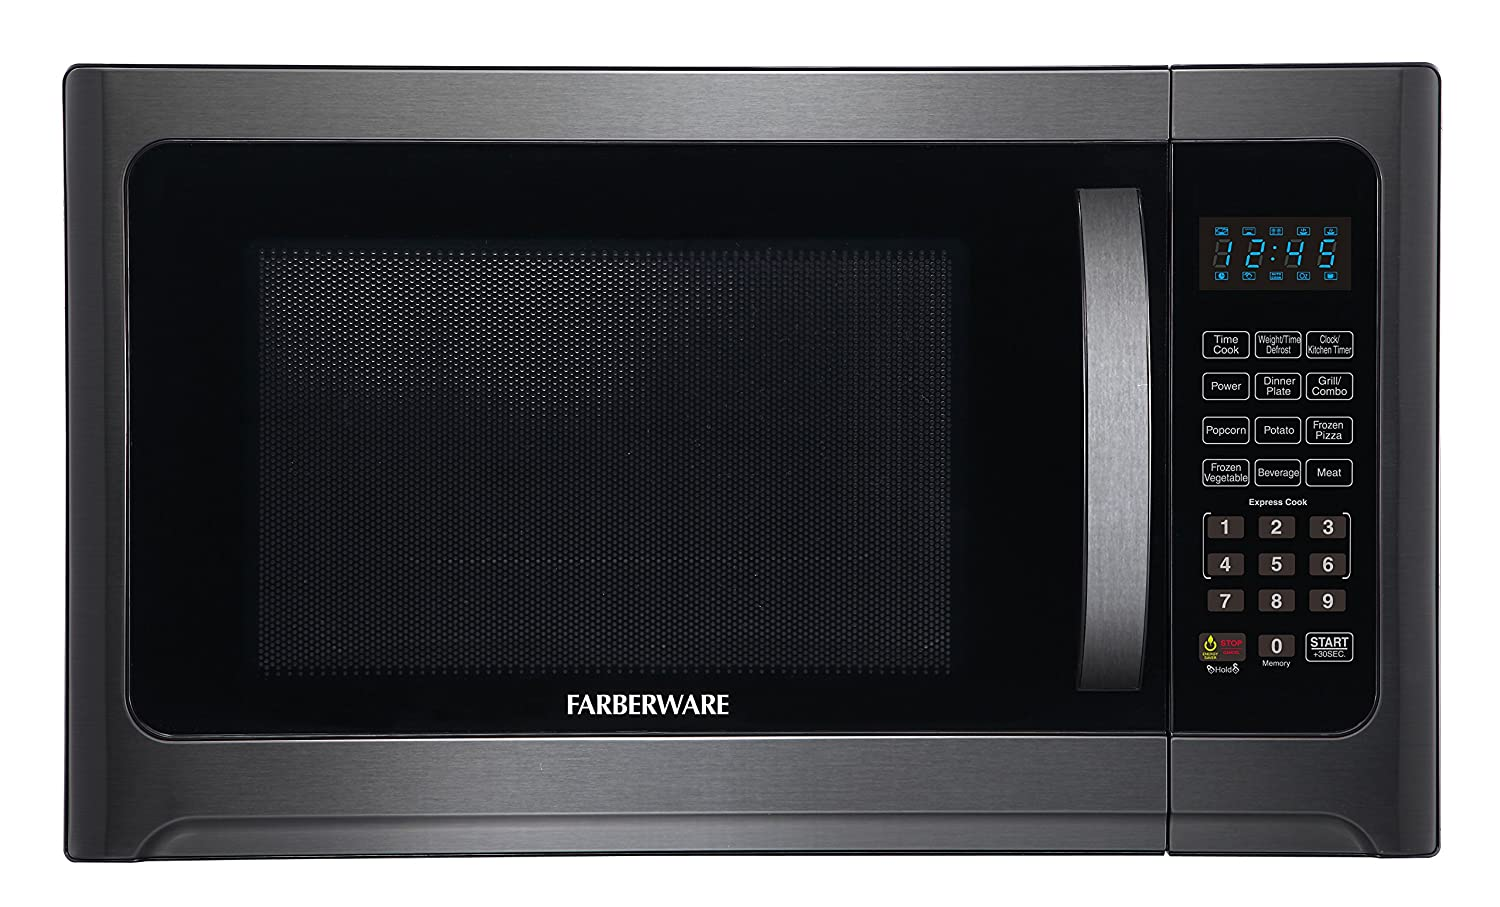 Farberware Black FMO12AHTBSG 1.2 Cubic Foot 1100-Watt Microwave Oven with Grill, Black Stainless Steel